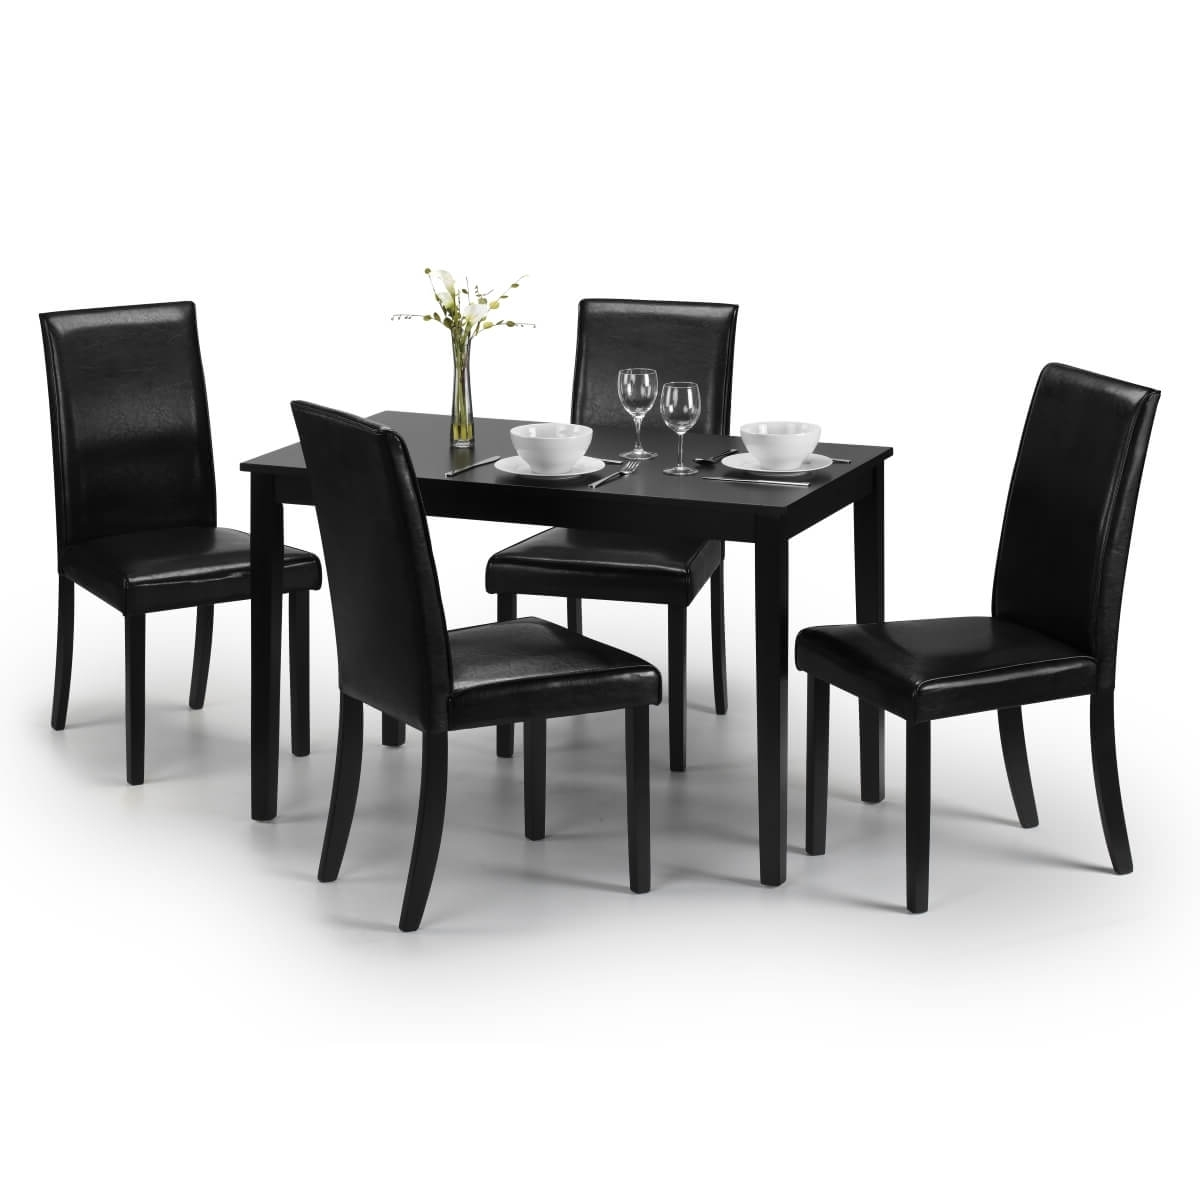 Dining Set – Hudson Dining Table And 4 Chairs In Black Hud006 Throughout 2017 Hudson Dining Tables And Chairs (View 3 of 25)